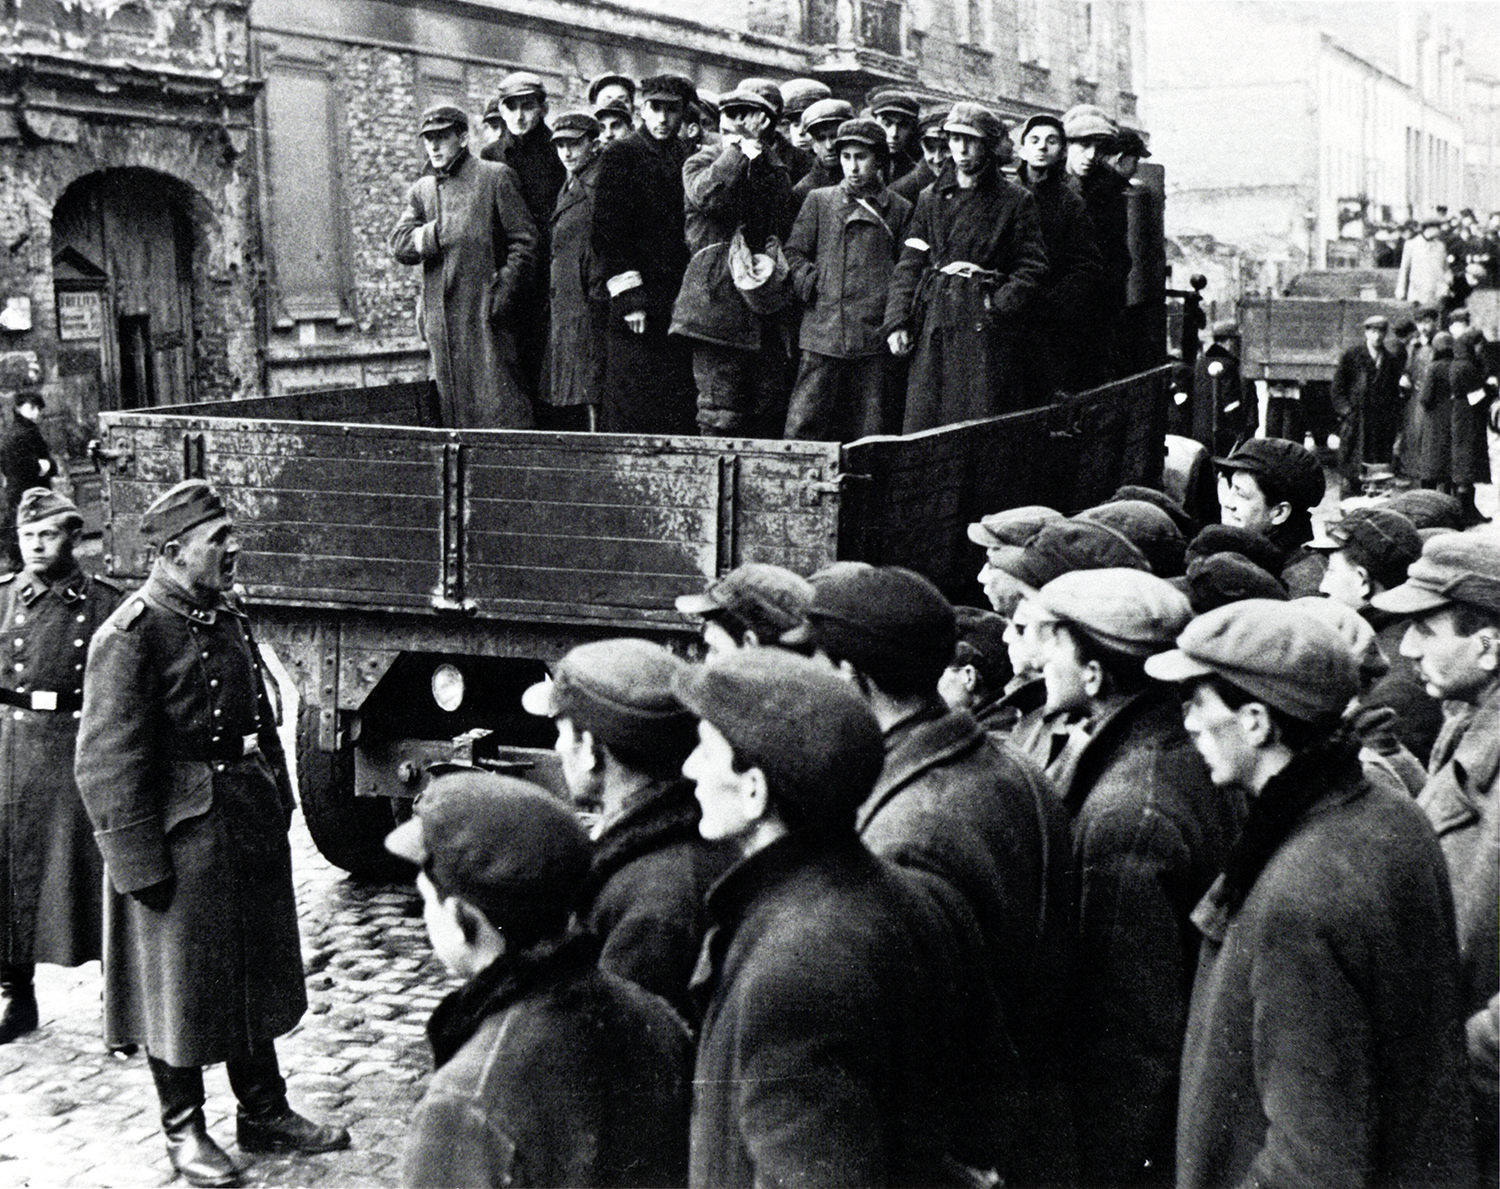 Jewish men being transported for labor from the Warsaw Ghetto, 1941. (Credit: Galerie Bilderwelt/Getty Images)